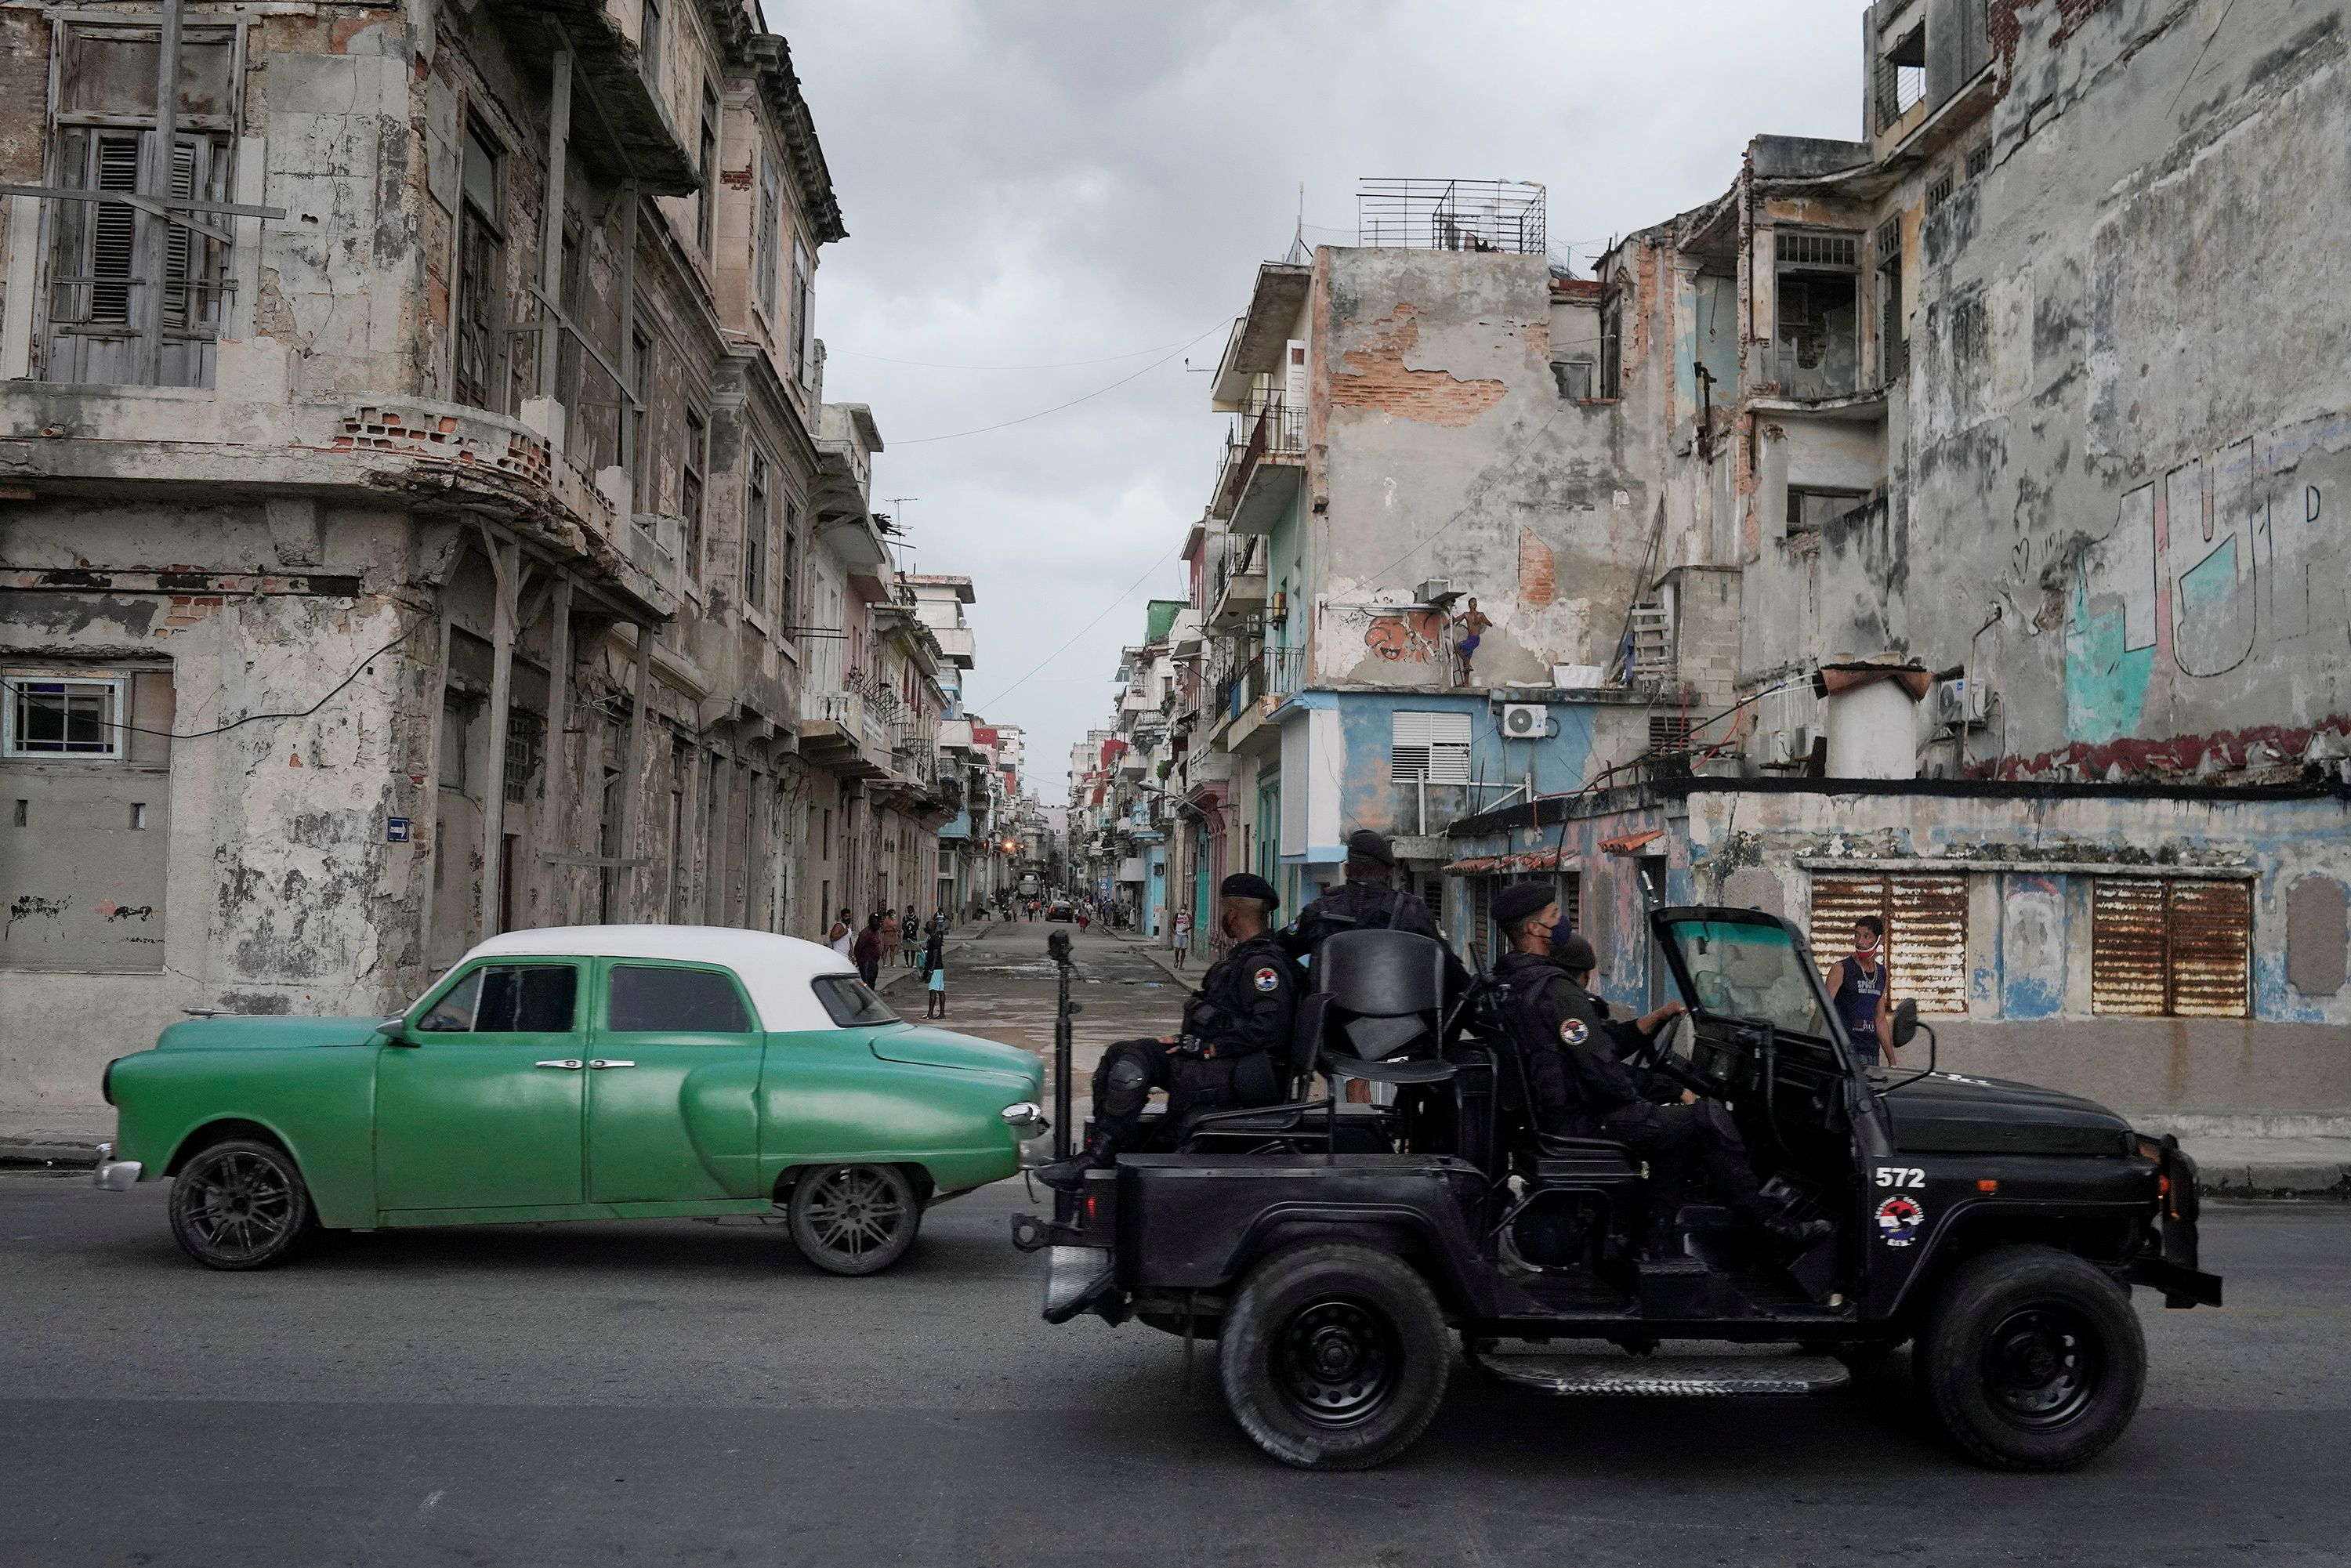 A special forces vehicle passes by a vintage car in downtown Havana, Cuba, July 13, 2021. REUTERS/Alexandre Meneghini